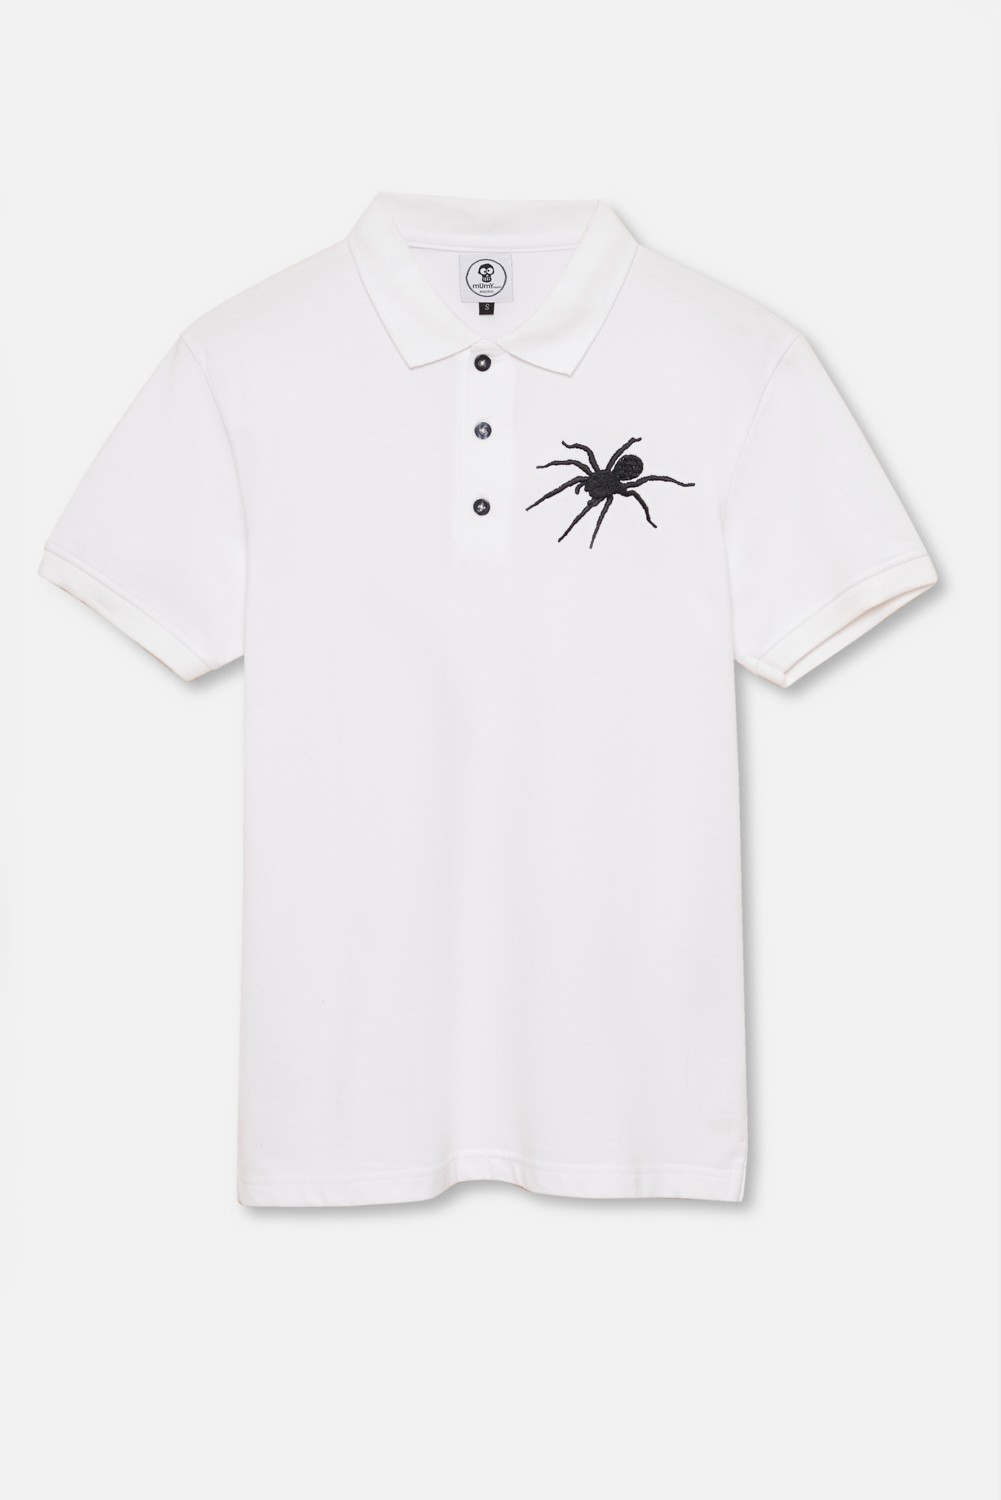 ADULT´S EMBROIDERED POLO SPIDER IN WHITE